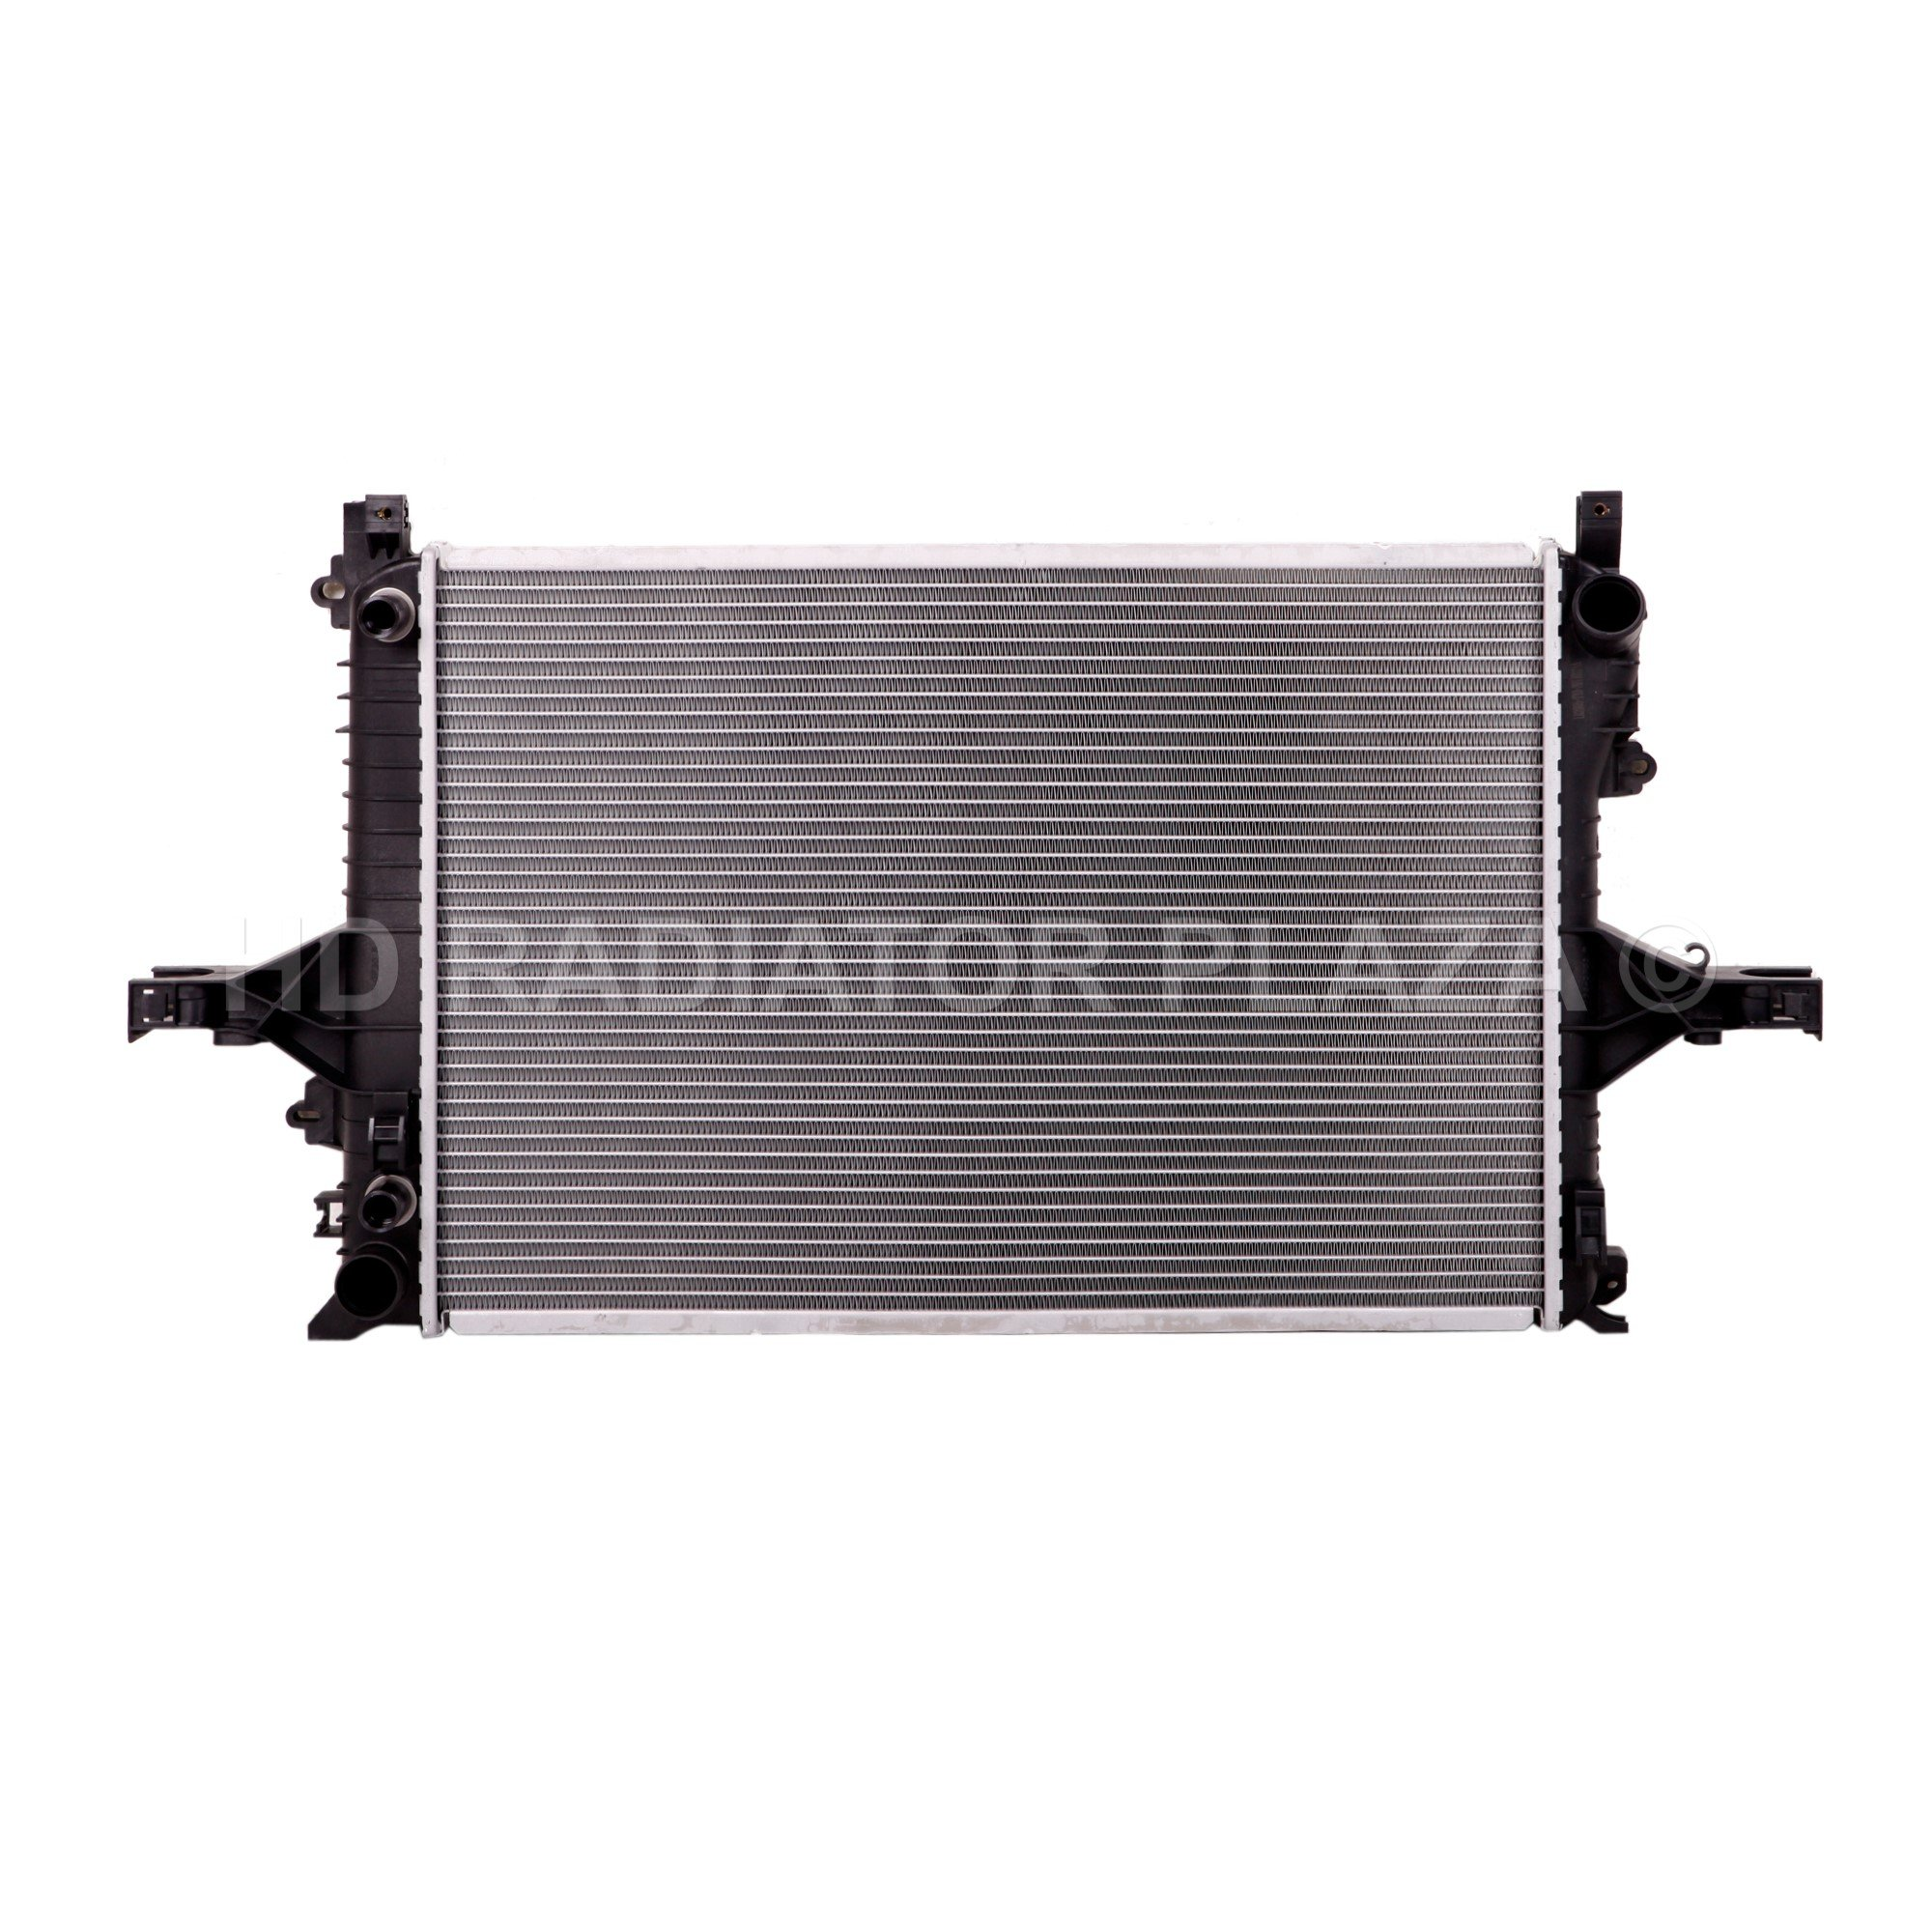 Radiator For 99-09 Volvo S60 / S80 / V70 / XC70 > Radiator